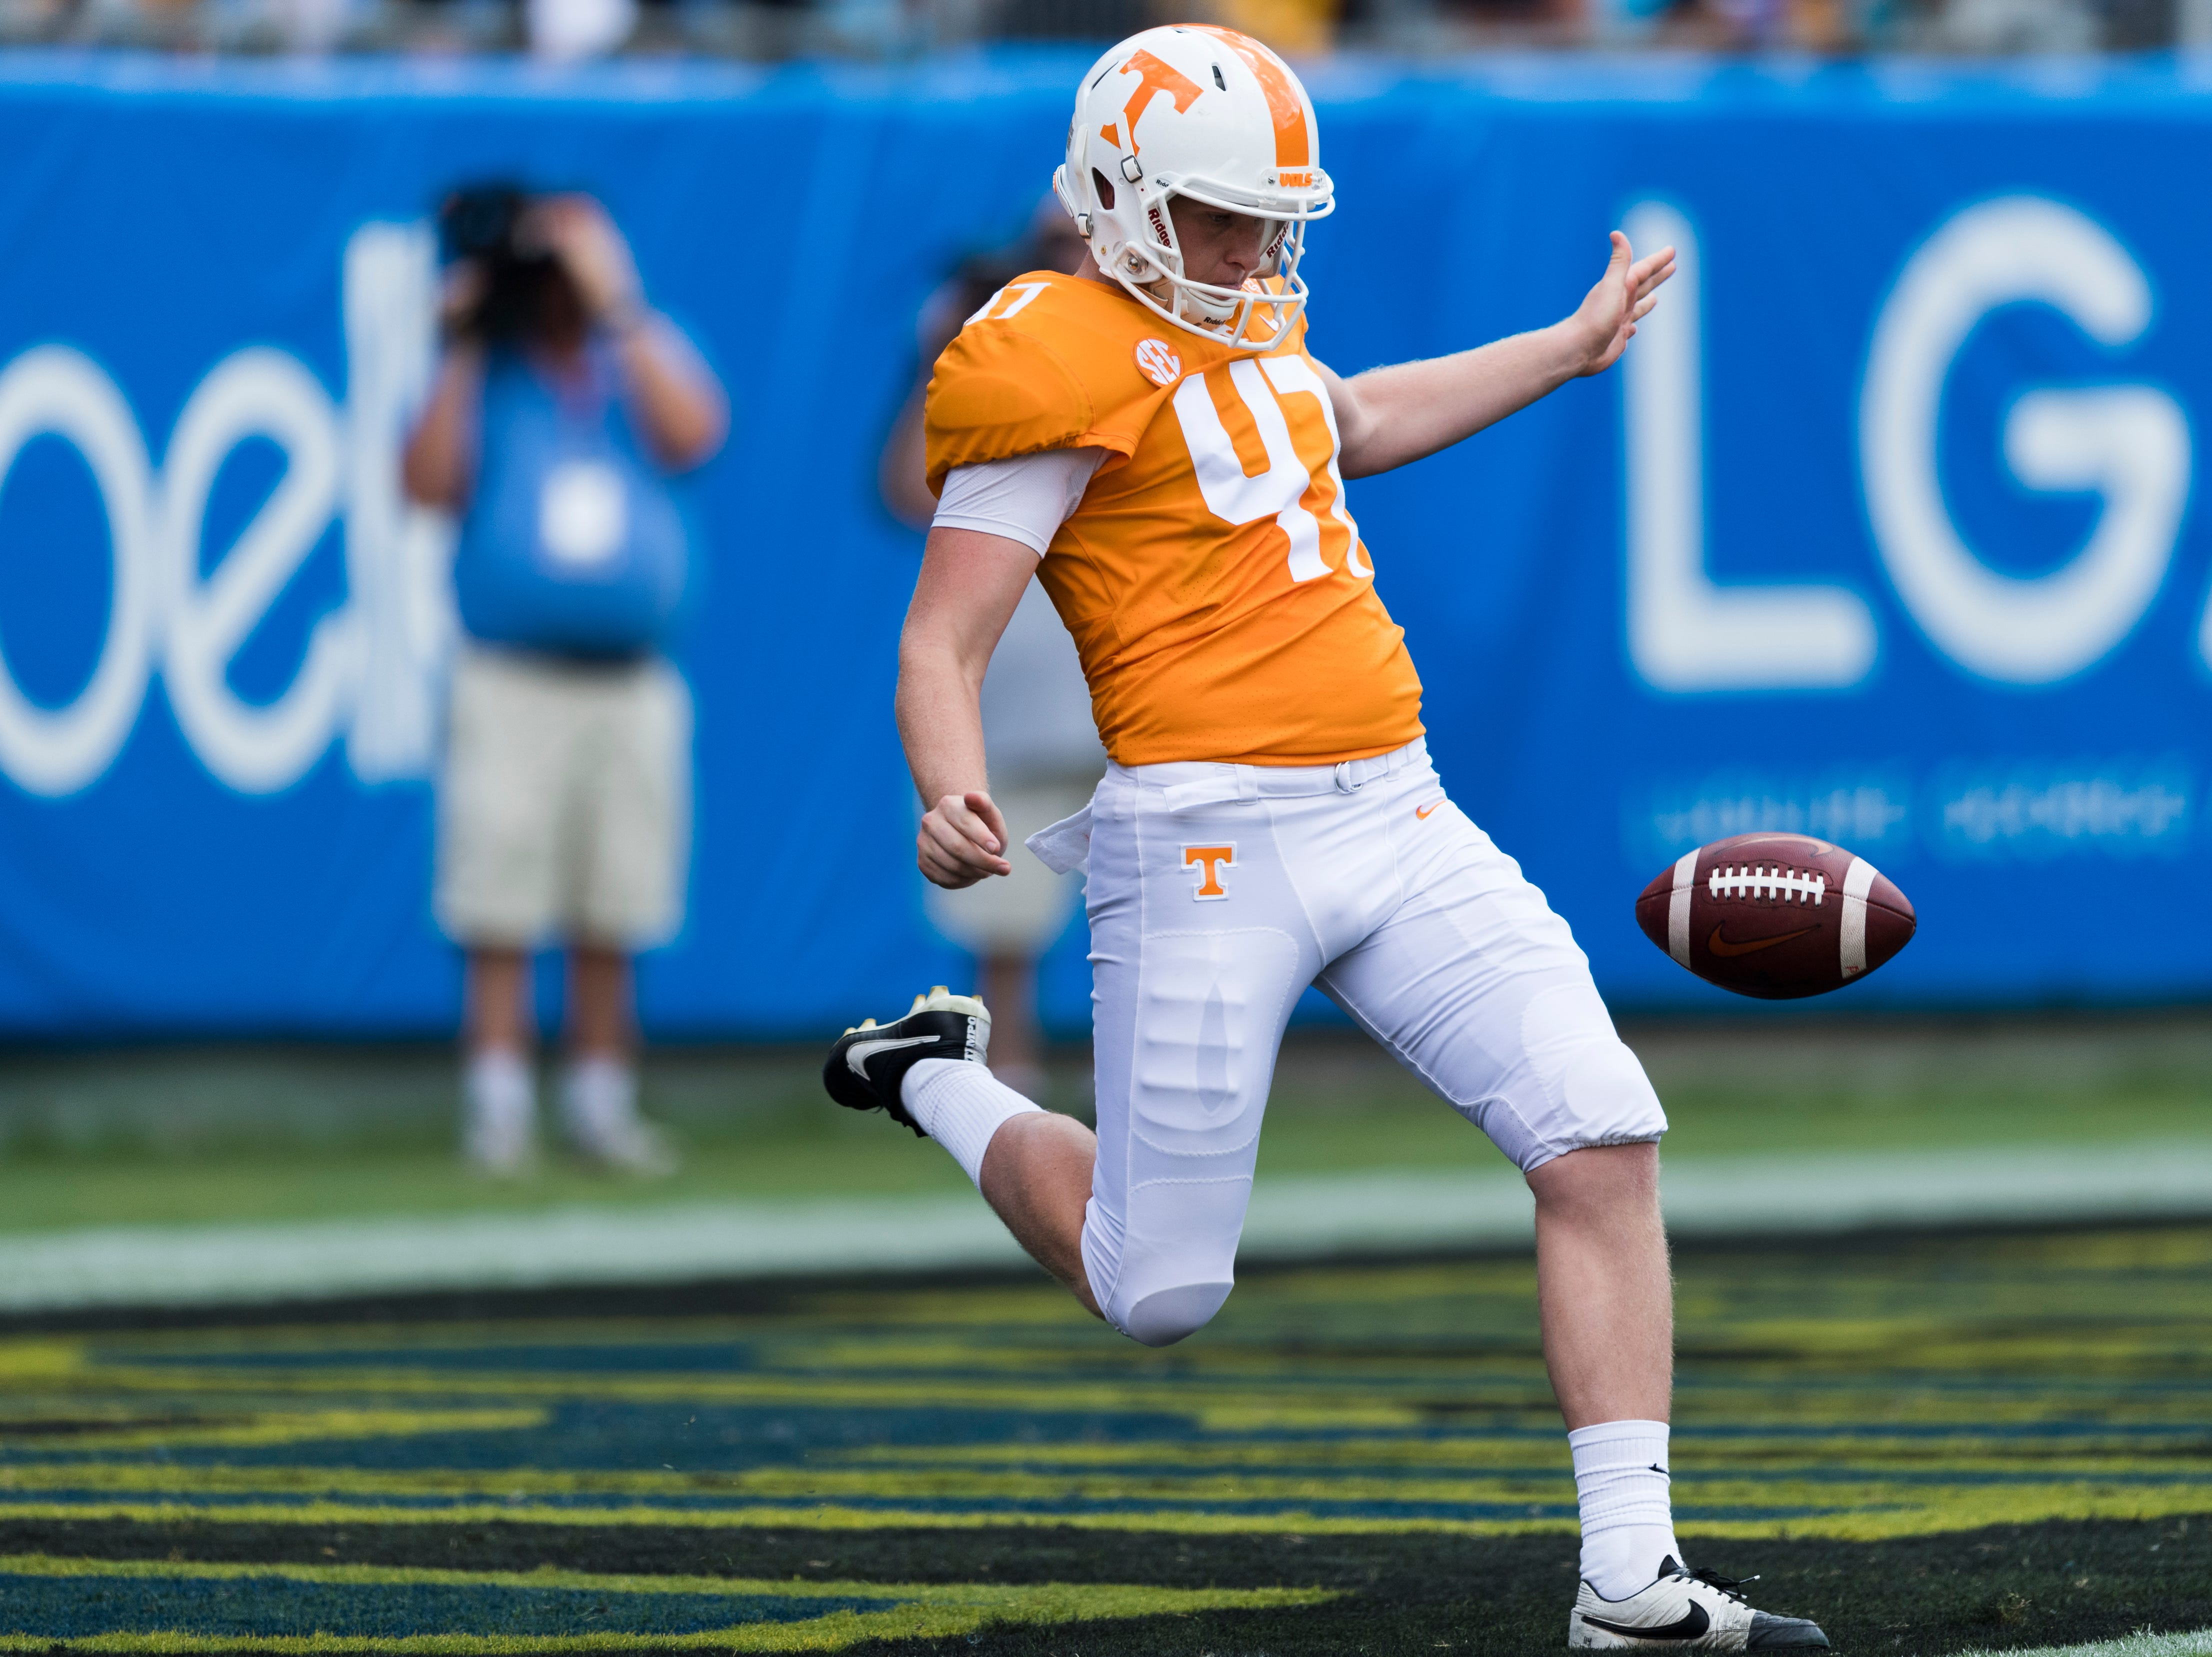 How Joe Doyle went from 'ain't no way' to breakout punter for UT Vols | USA TODAY Sports